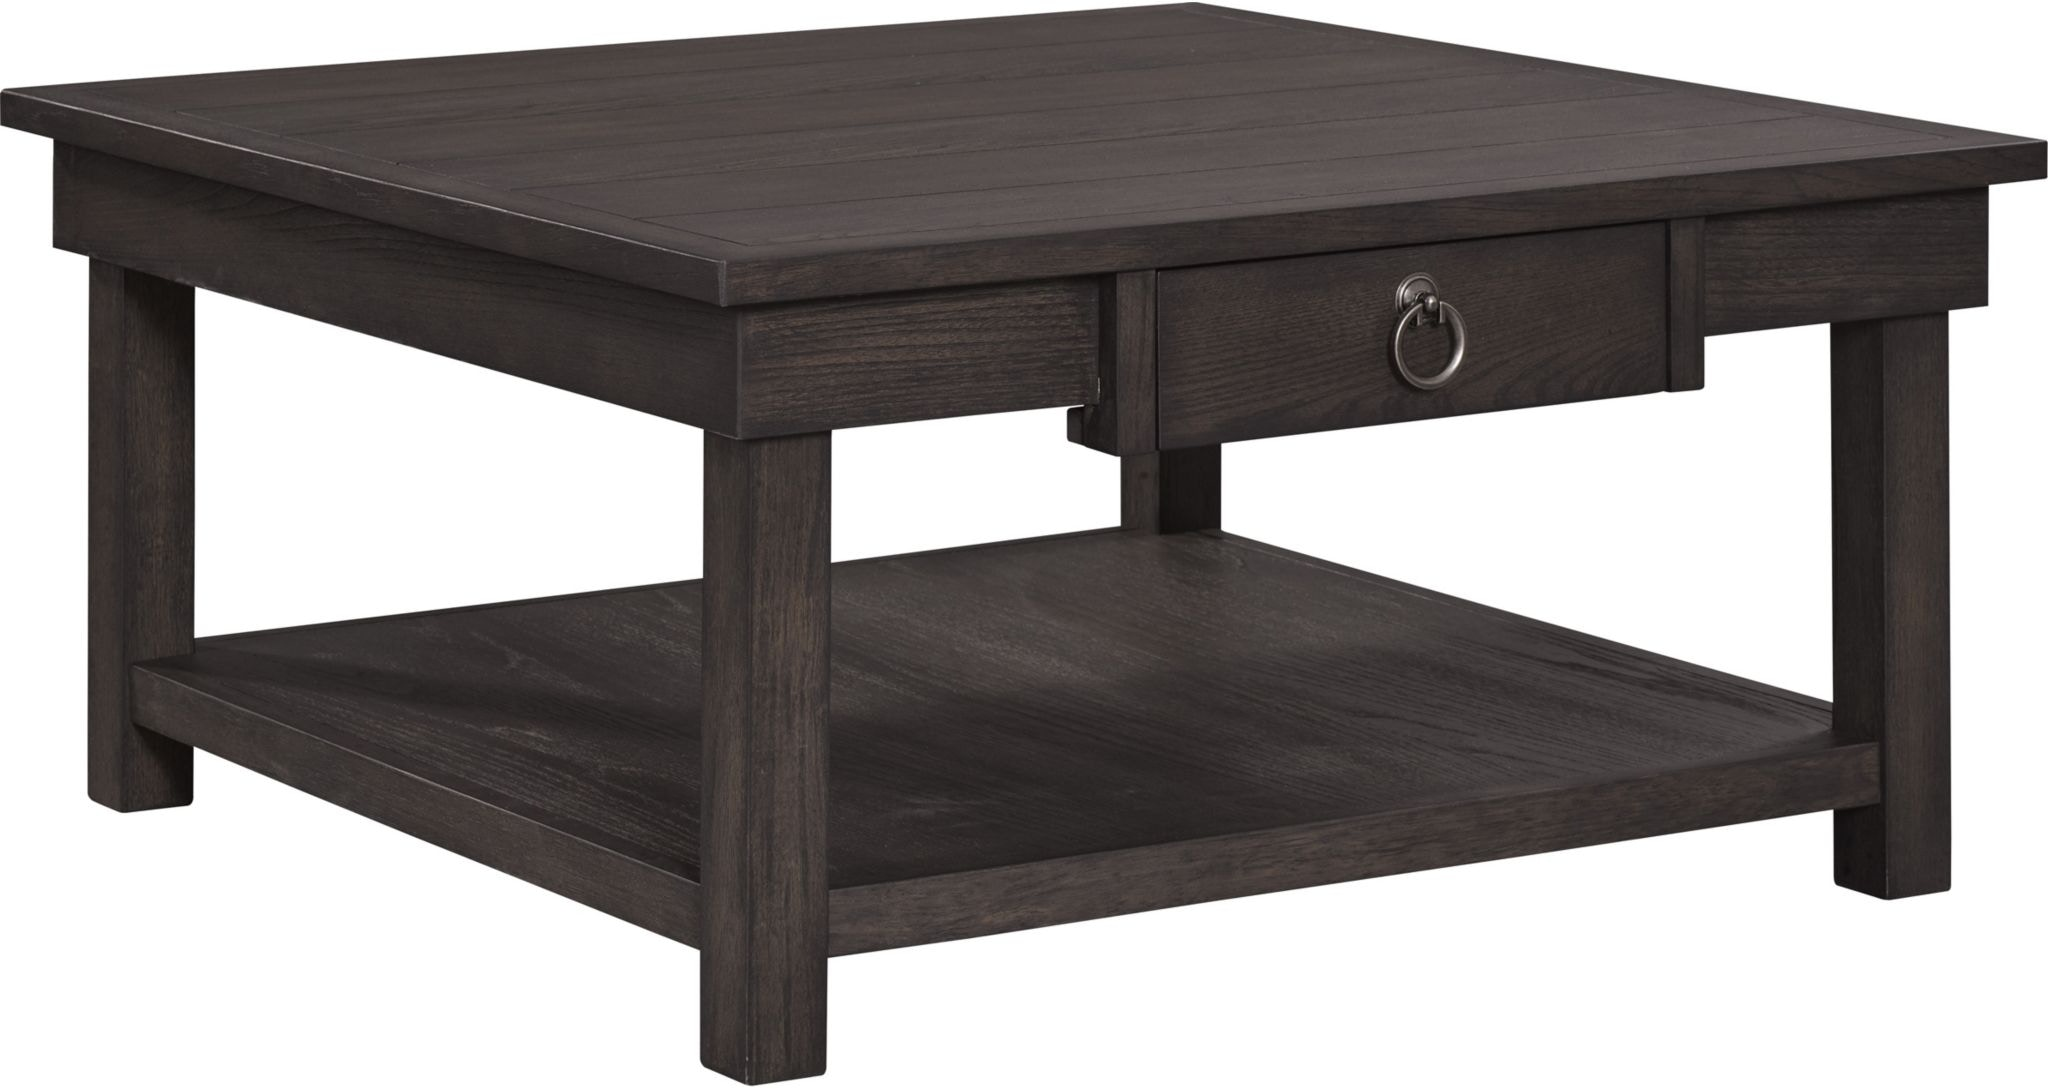 Broyhill Living Room Ashgrove Square Cocktail Table